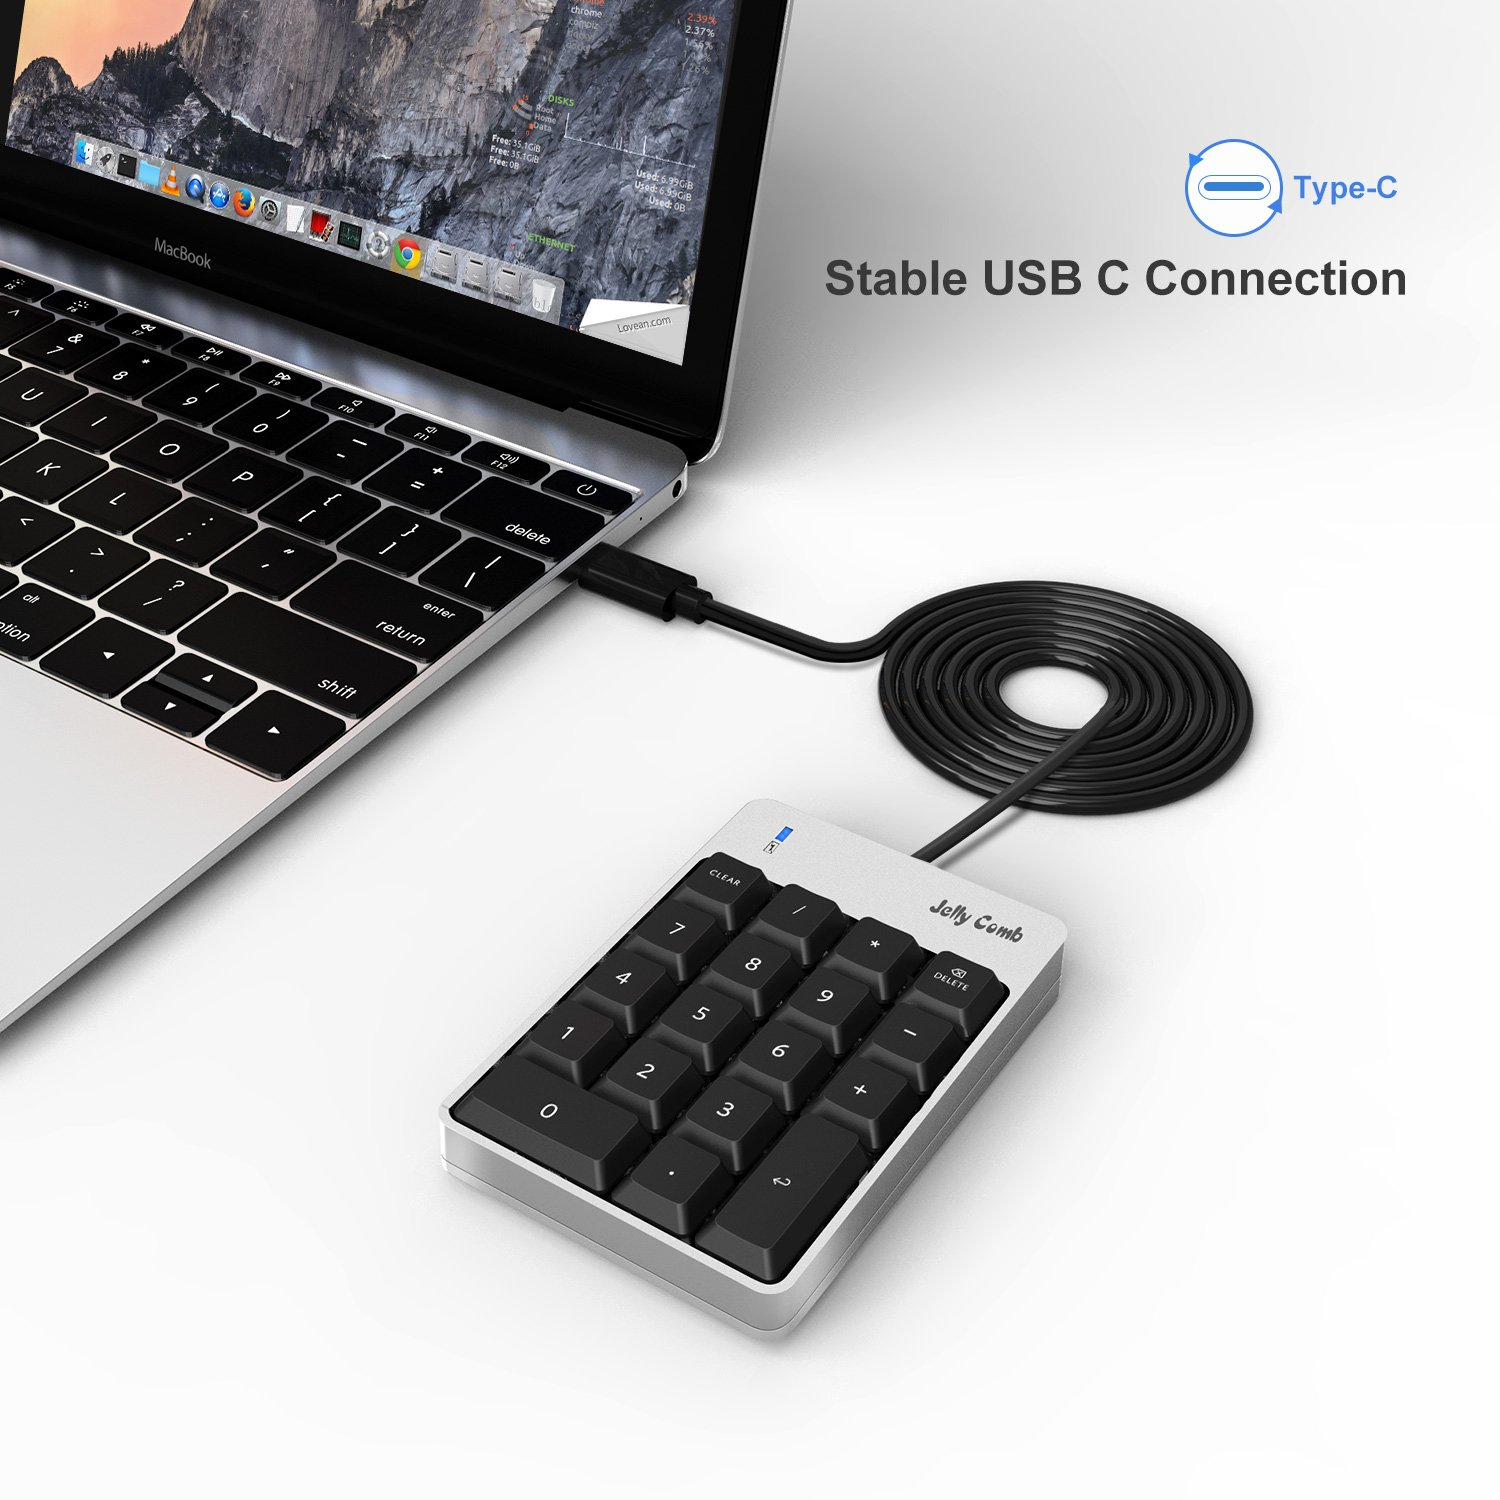 Jelly Comb Numeric Keypad for MacBook, Type C Number Pad, Portable Mini Wired 18-Key USB C Number Pad for Mac, Mac Pro, MacBook, MacBook Pro 2016/2017, iMac, iMac Pro by Jelly Comb (Image #2)